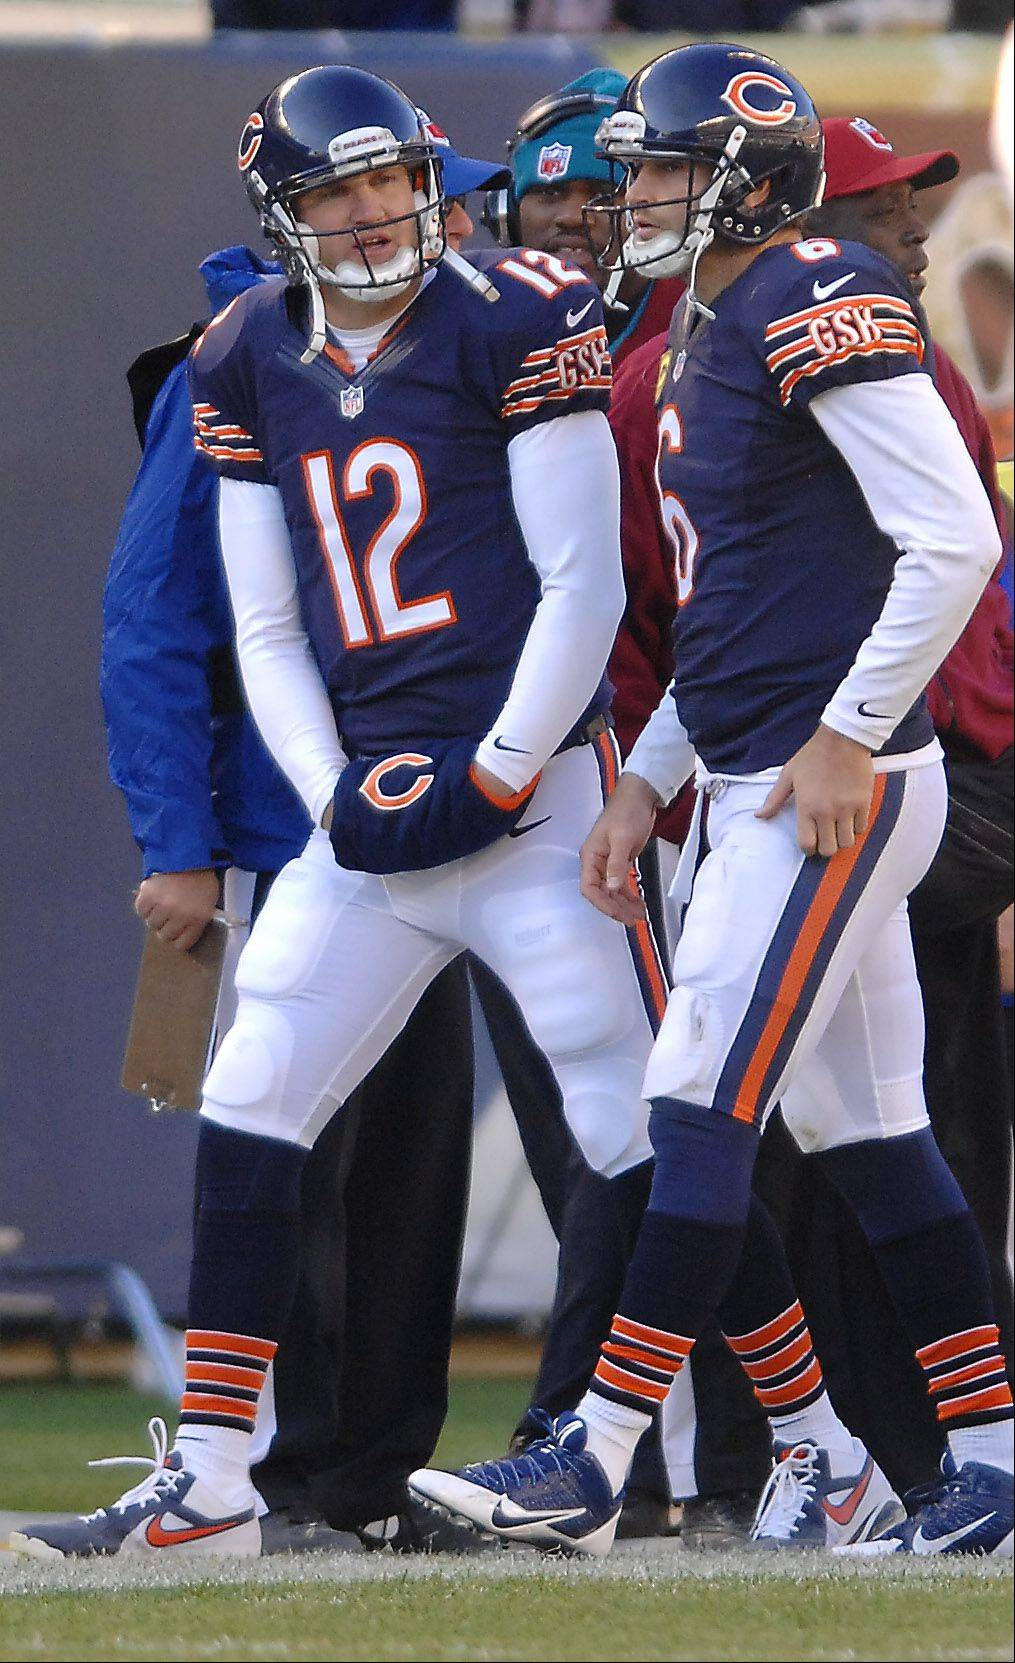 Chicago Bears quarterbacks Josh McCown (12) Jay Cutler (6) confer on the sideline after Cutler comes off the field during the third quarter during Sunday's game in Chicago.